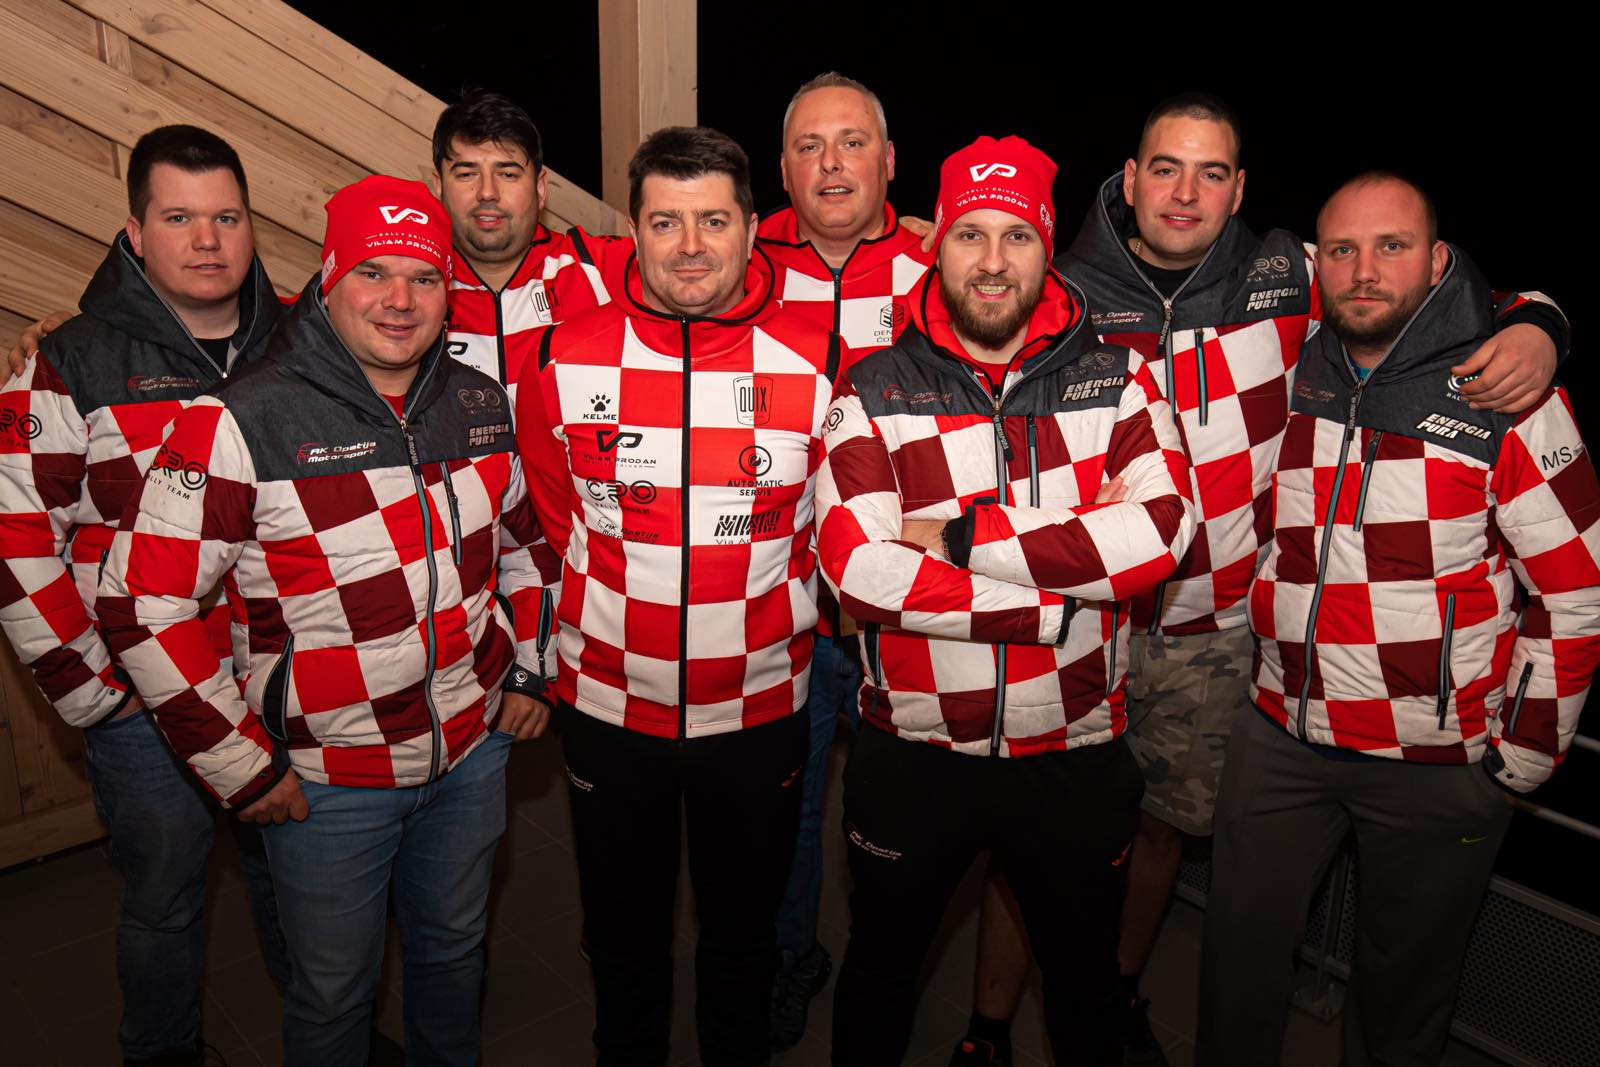 Hrvatska ekipa na Rallyju Monte Carlo